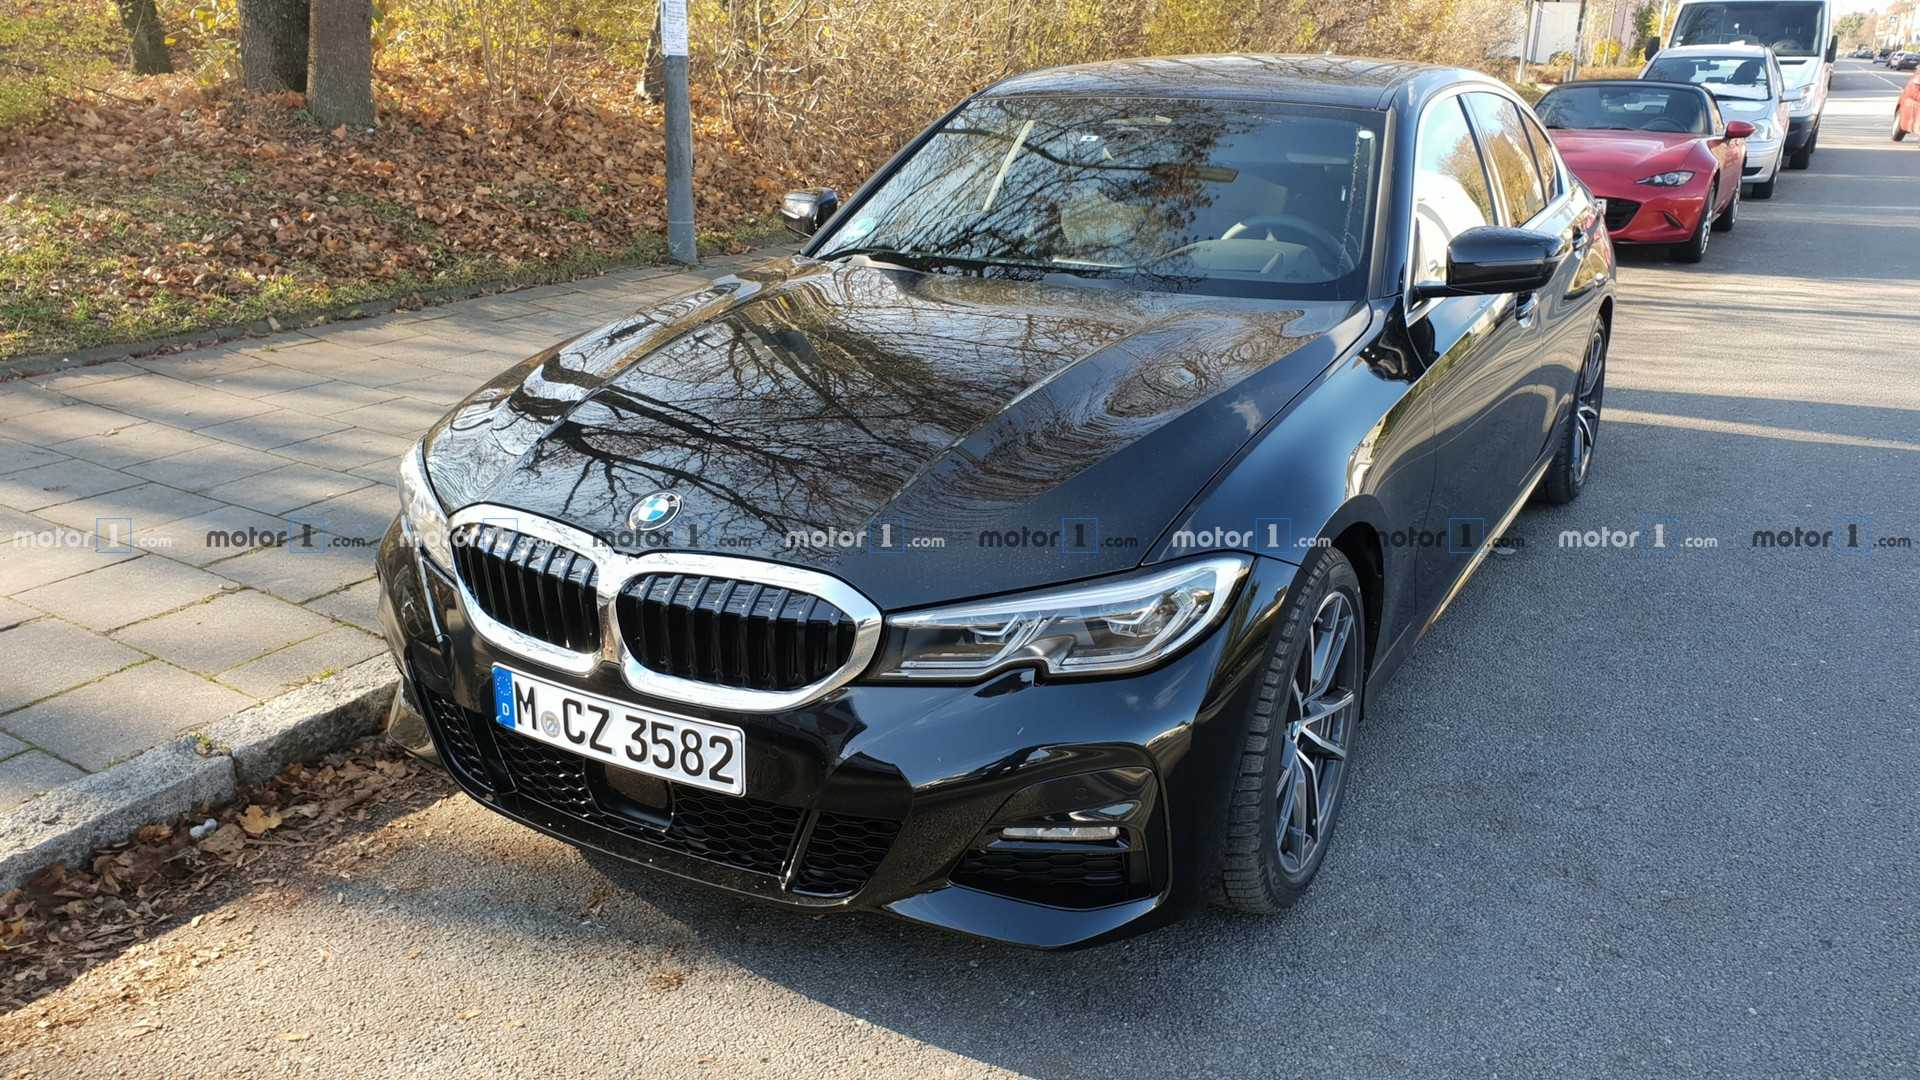 88 Gallery of 2019 Bmw G20 3 Series Spesification with 2019 Bmw G20 3 Series